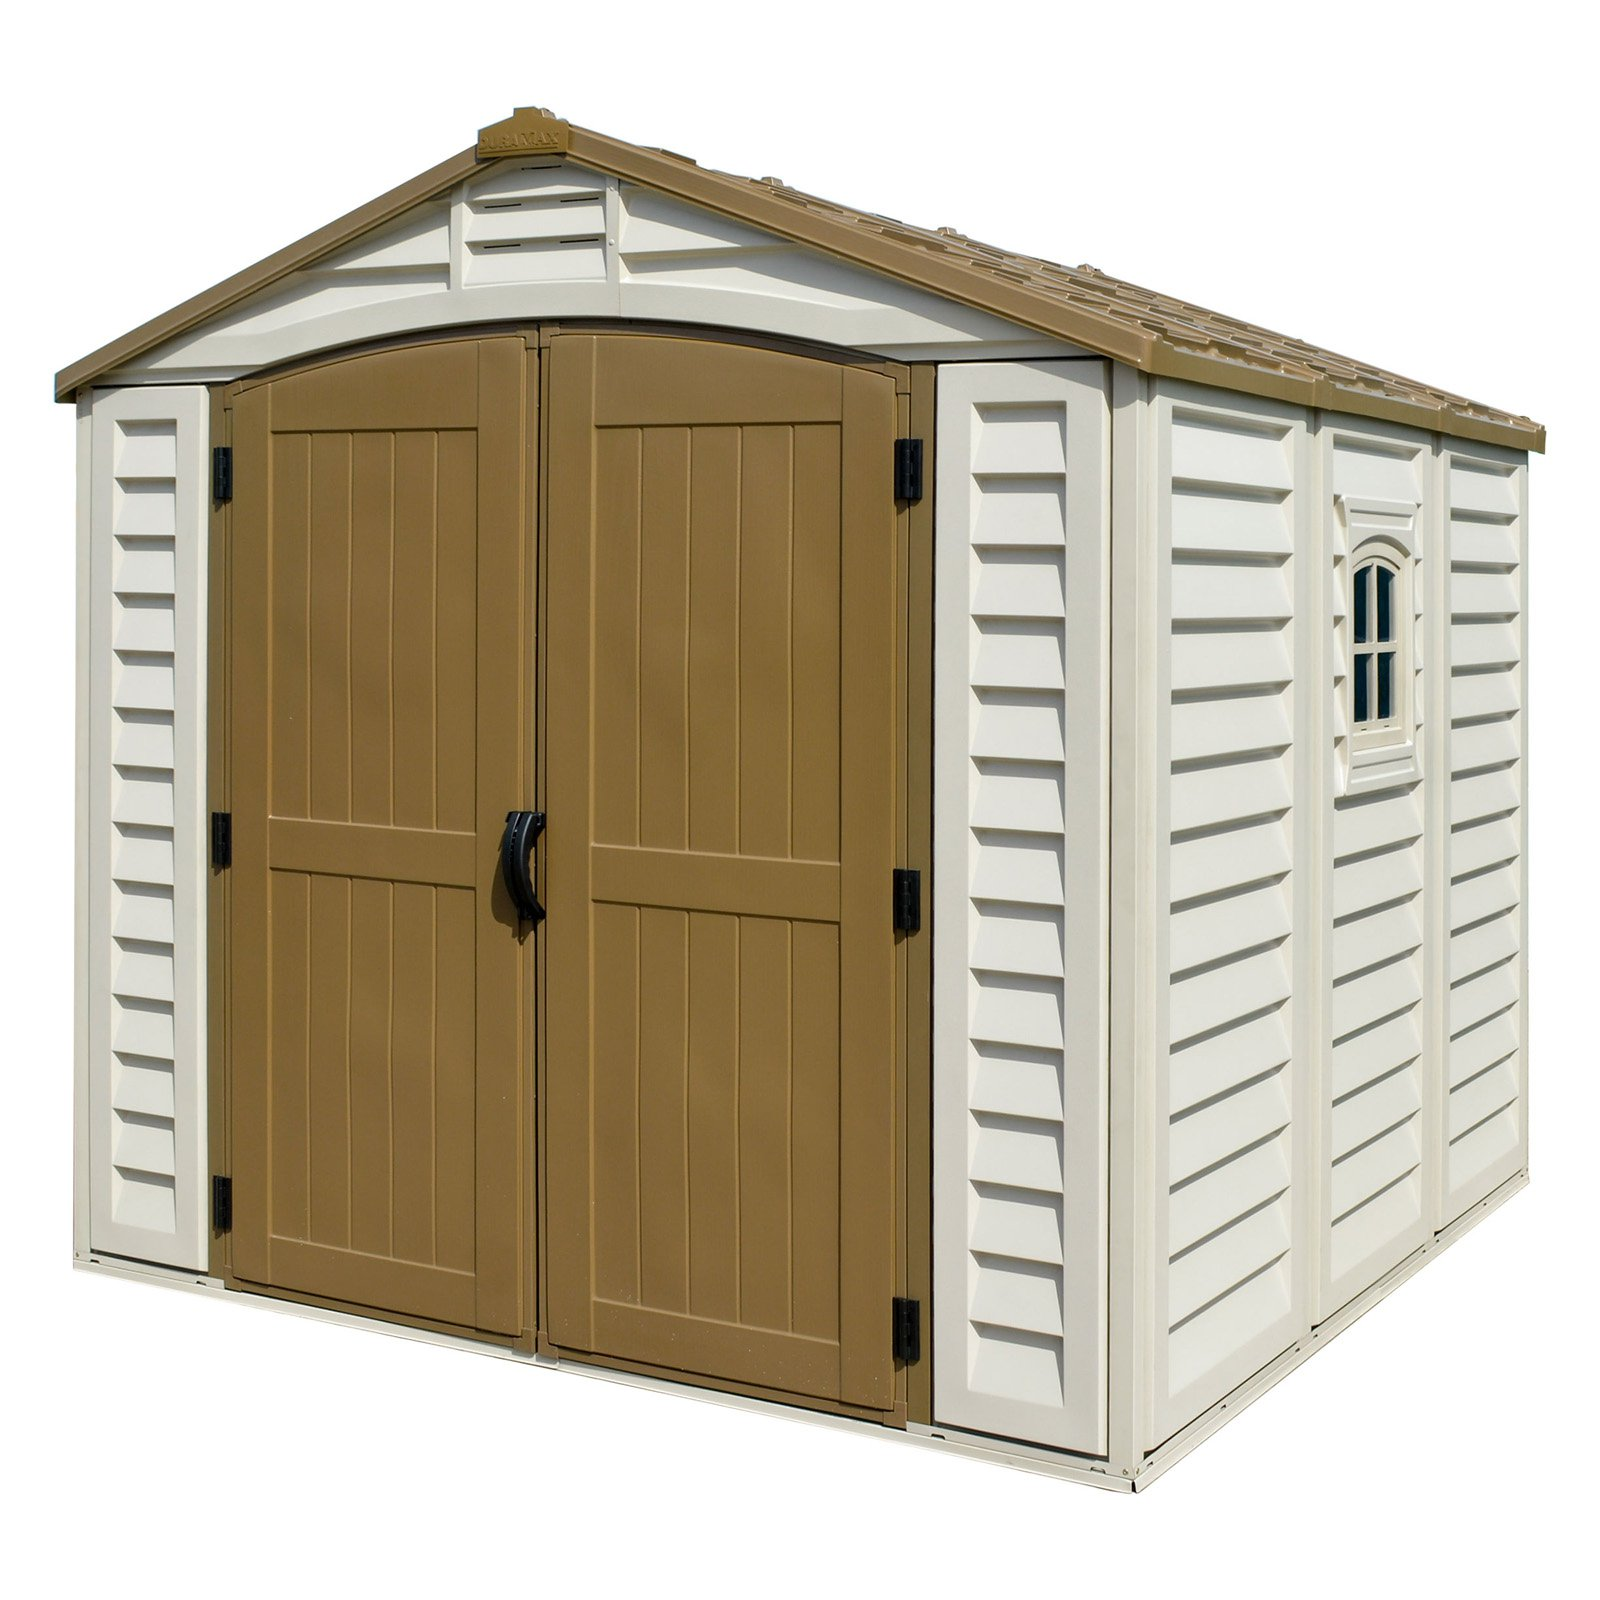 Duramax Building Products DuraPlus Vinyl Shed with Foundation